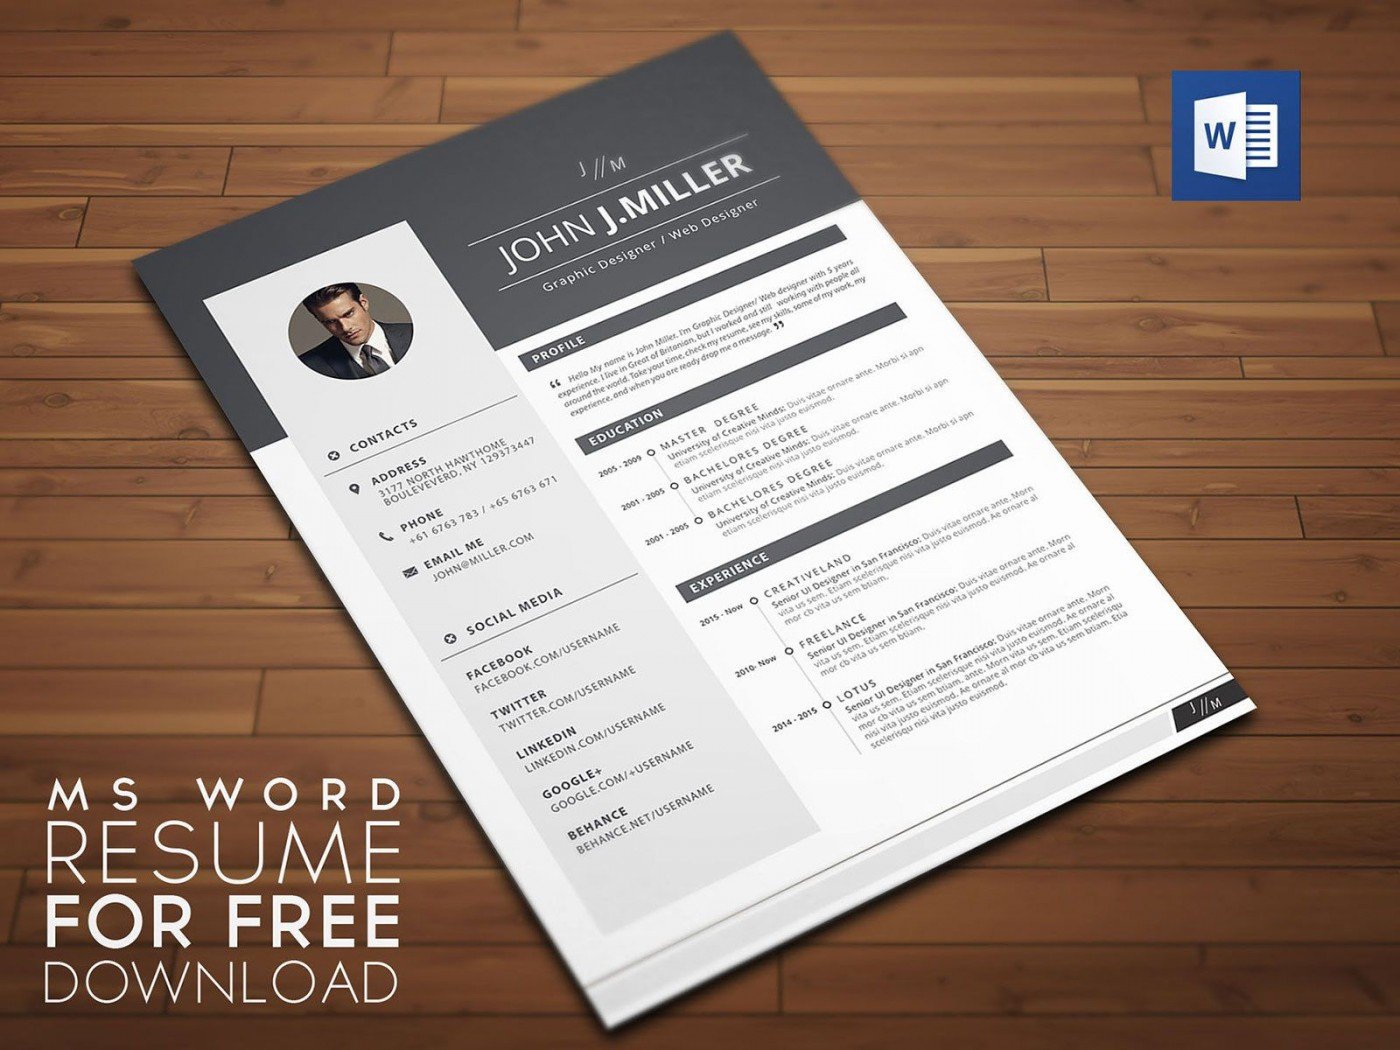 005 Unusual M Word Template Download Photo  Ms Microsoft Checklist Free Certificate Crossword1400